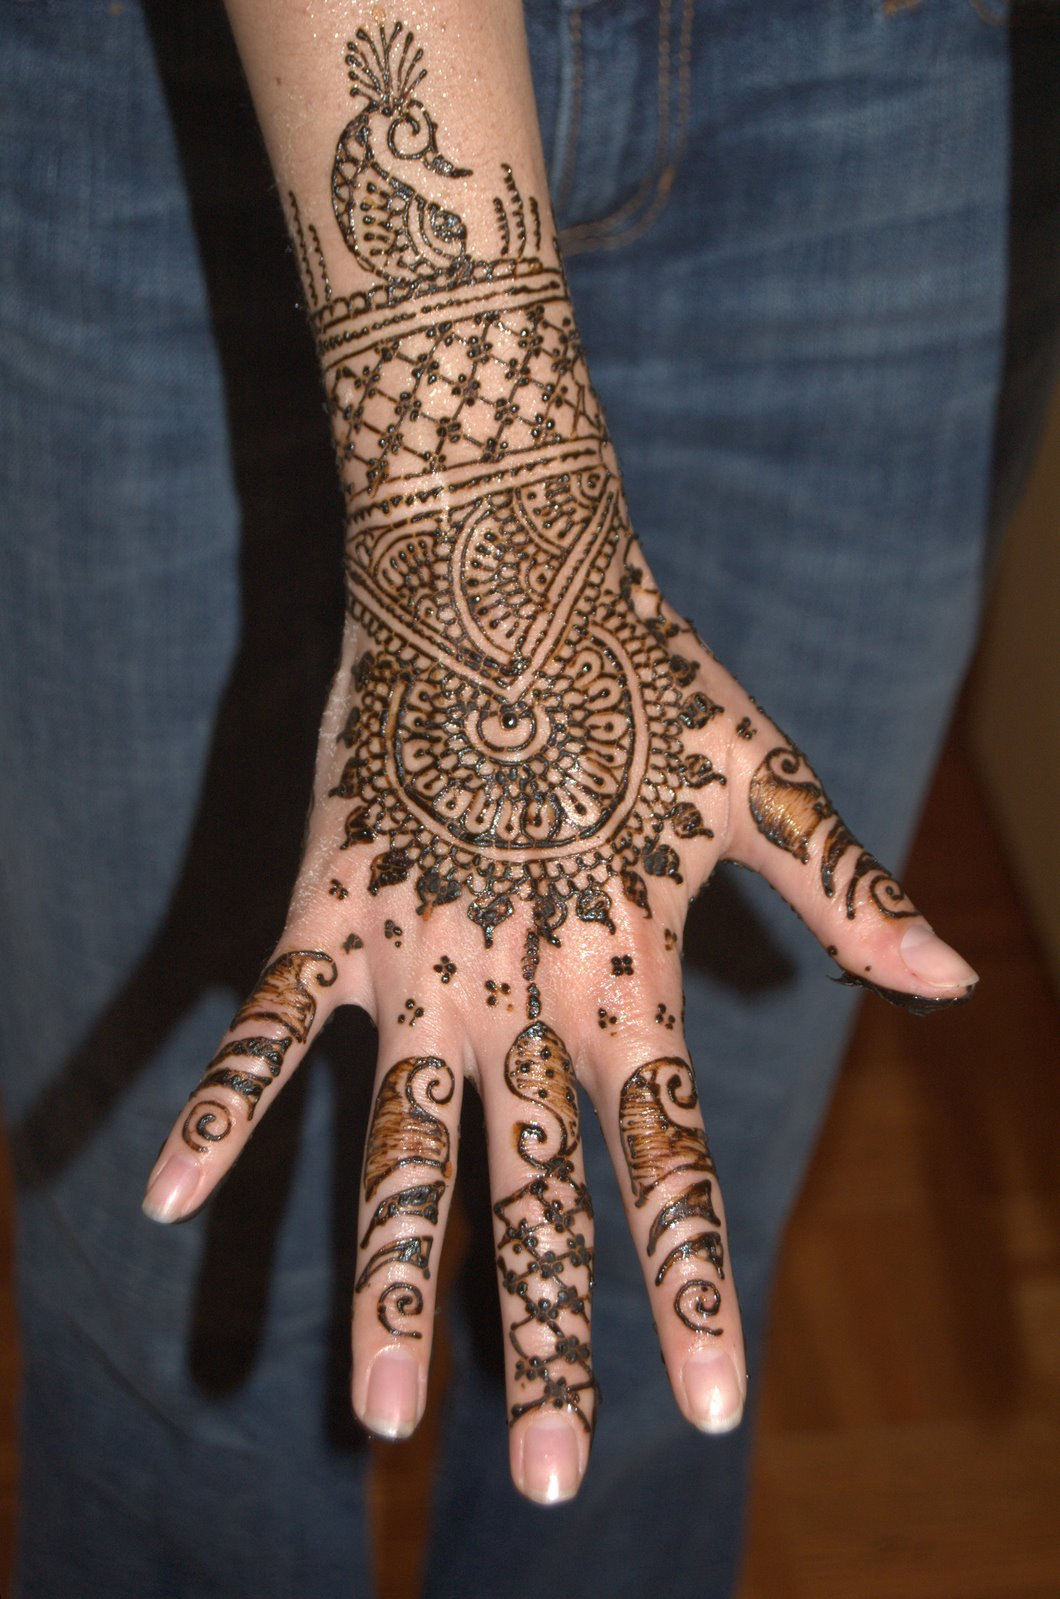 Latest Fashion Indian Mehndi Designs - Arabic Mehndi Designs - Pakistani Mehndi Designs